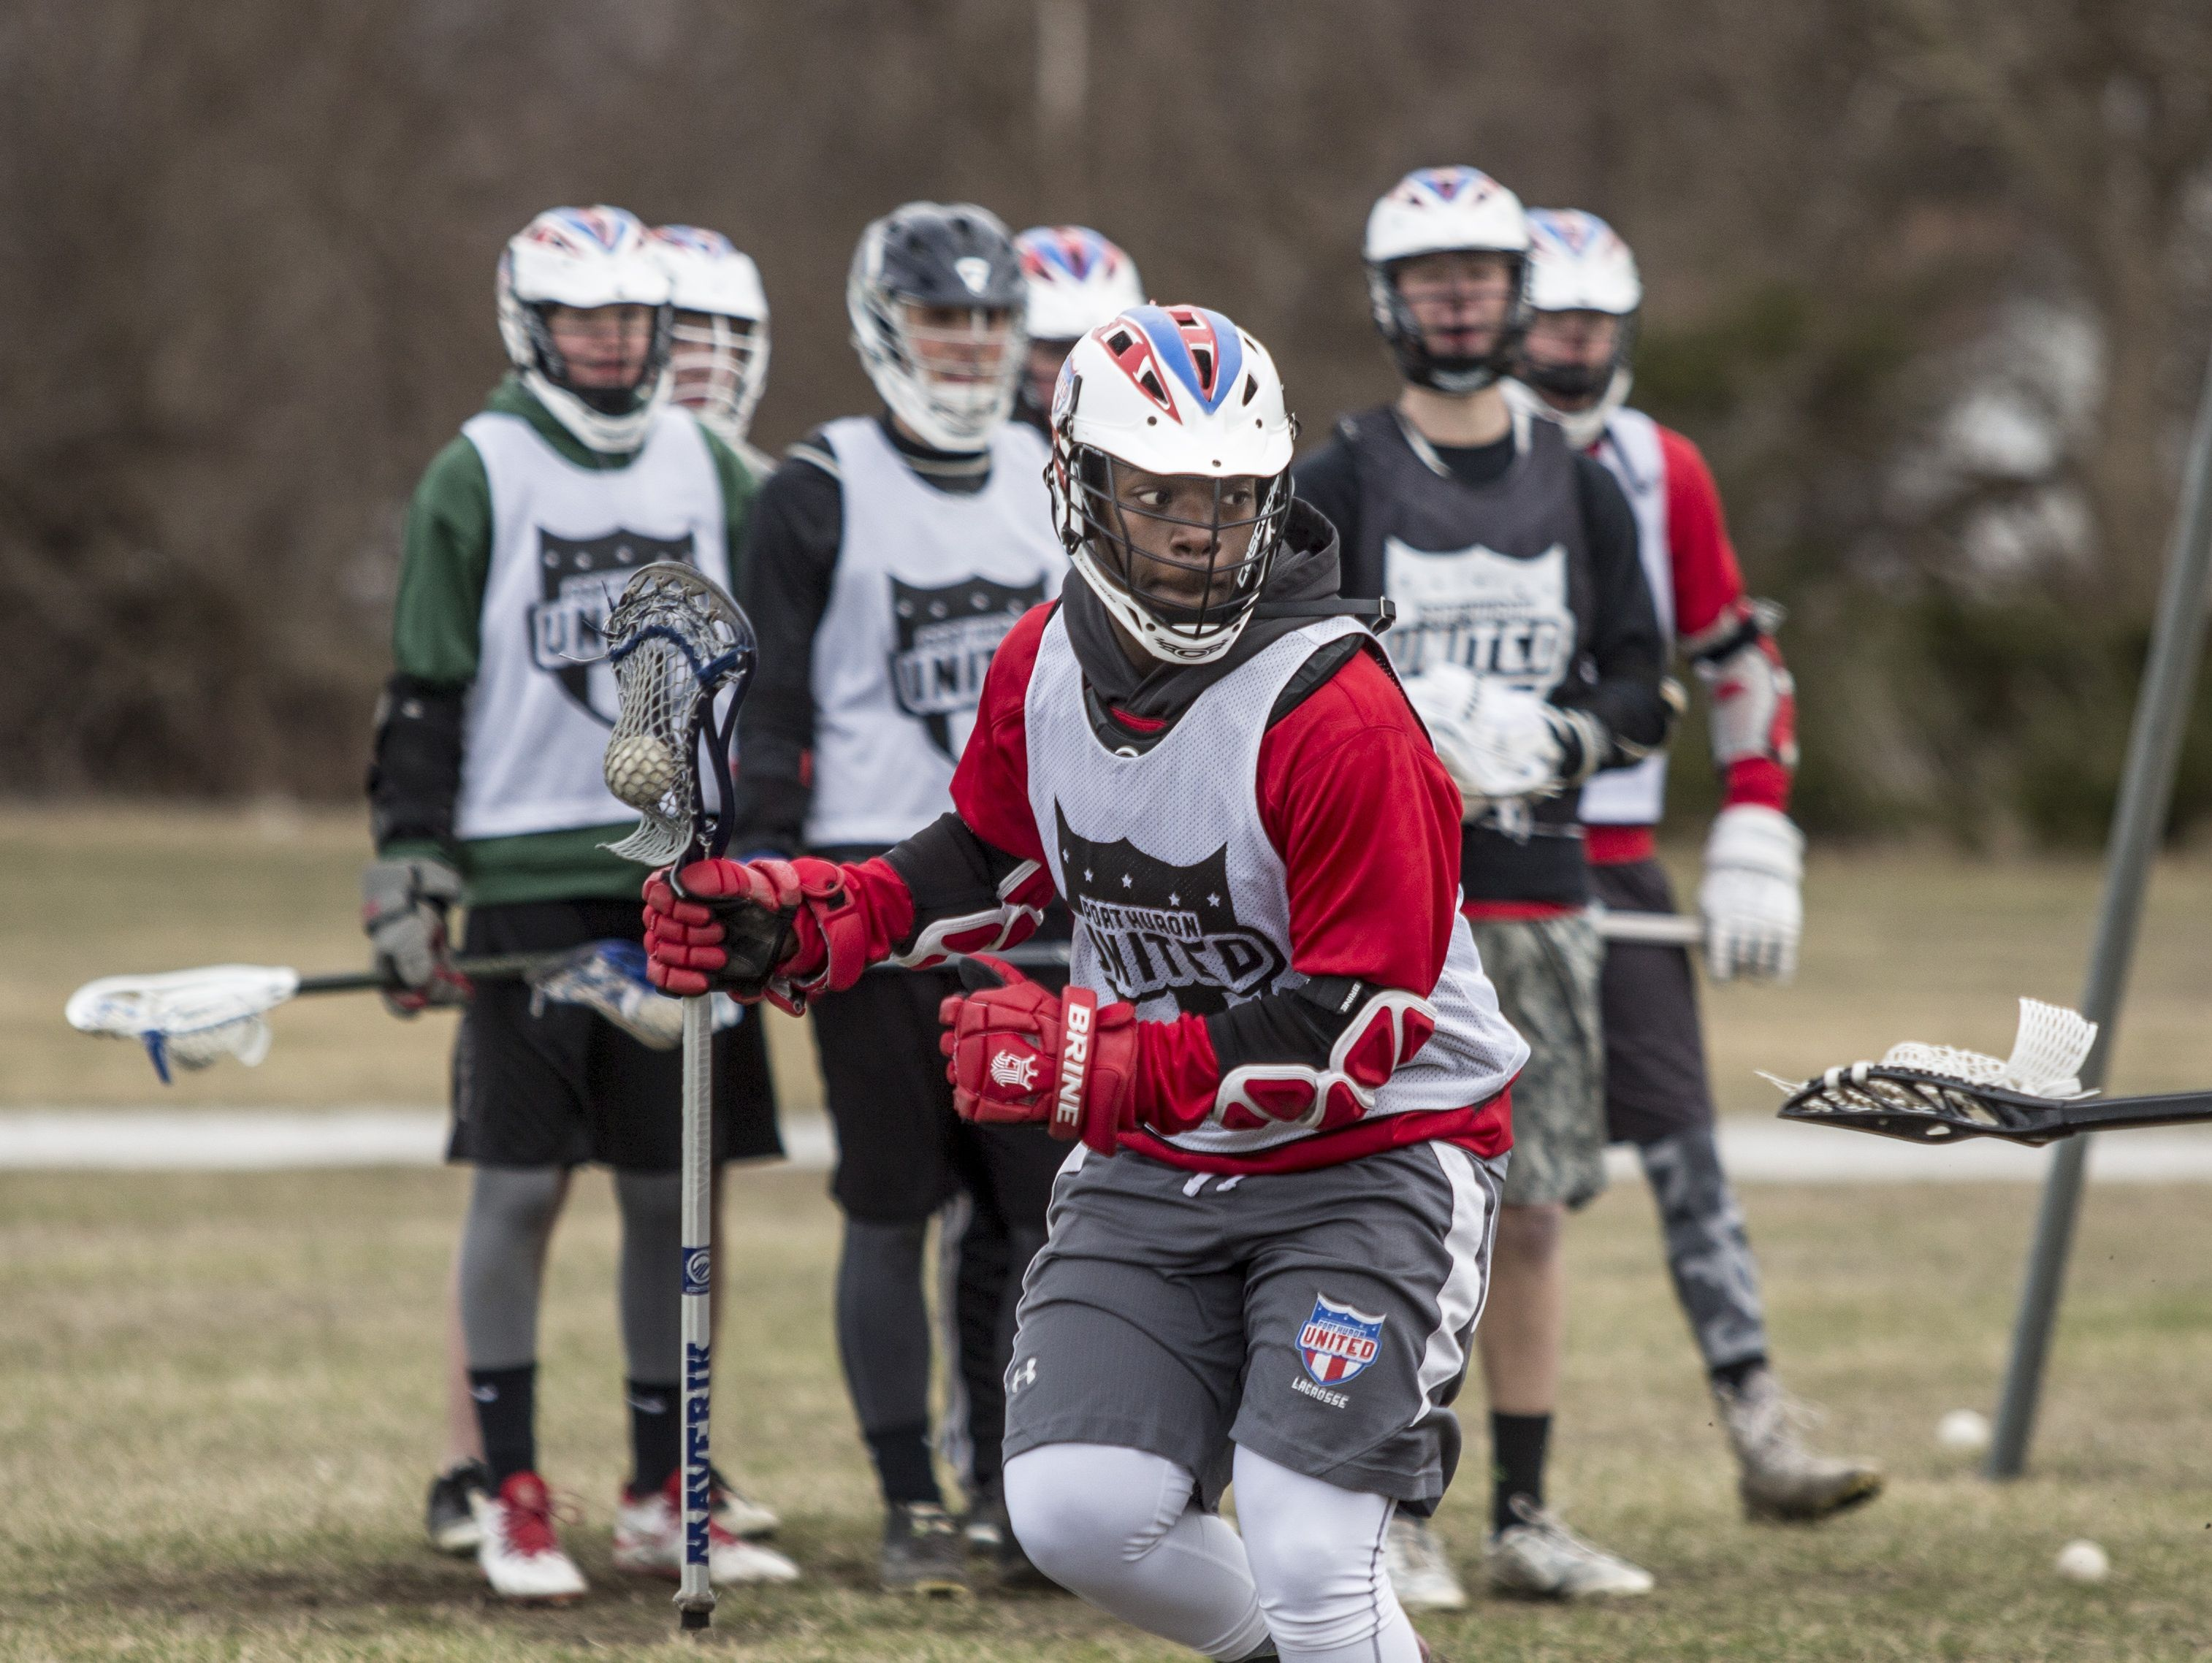 Port Huron Unified junior Josh Alston runs a drill during practice Friday, March 18, 2016 at Central Middle School.